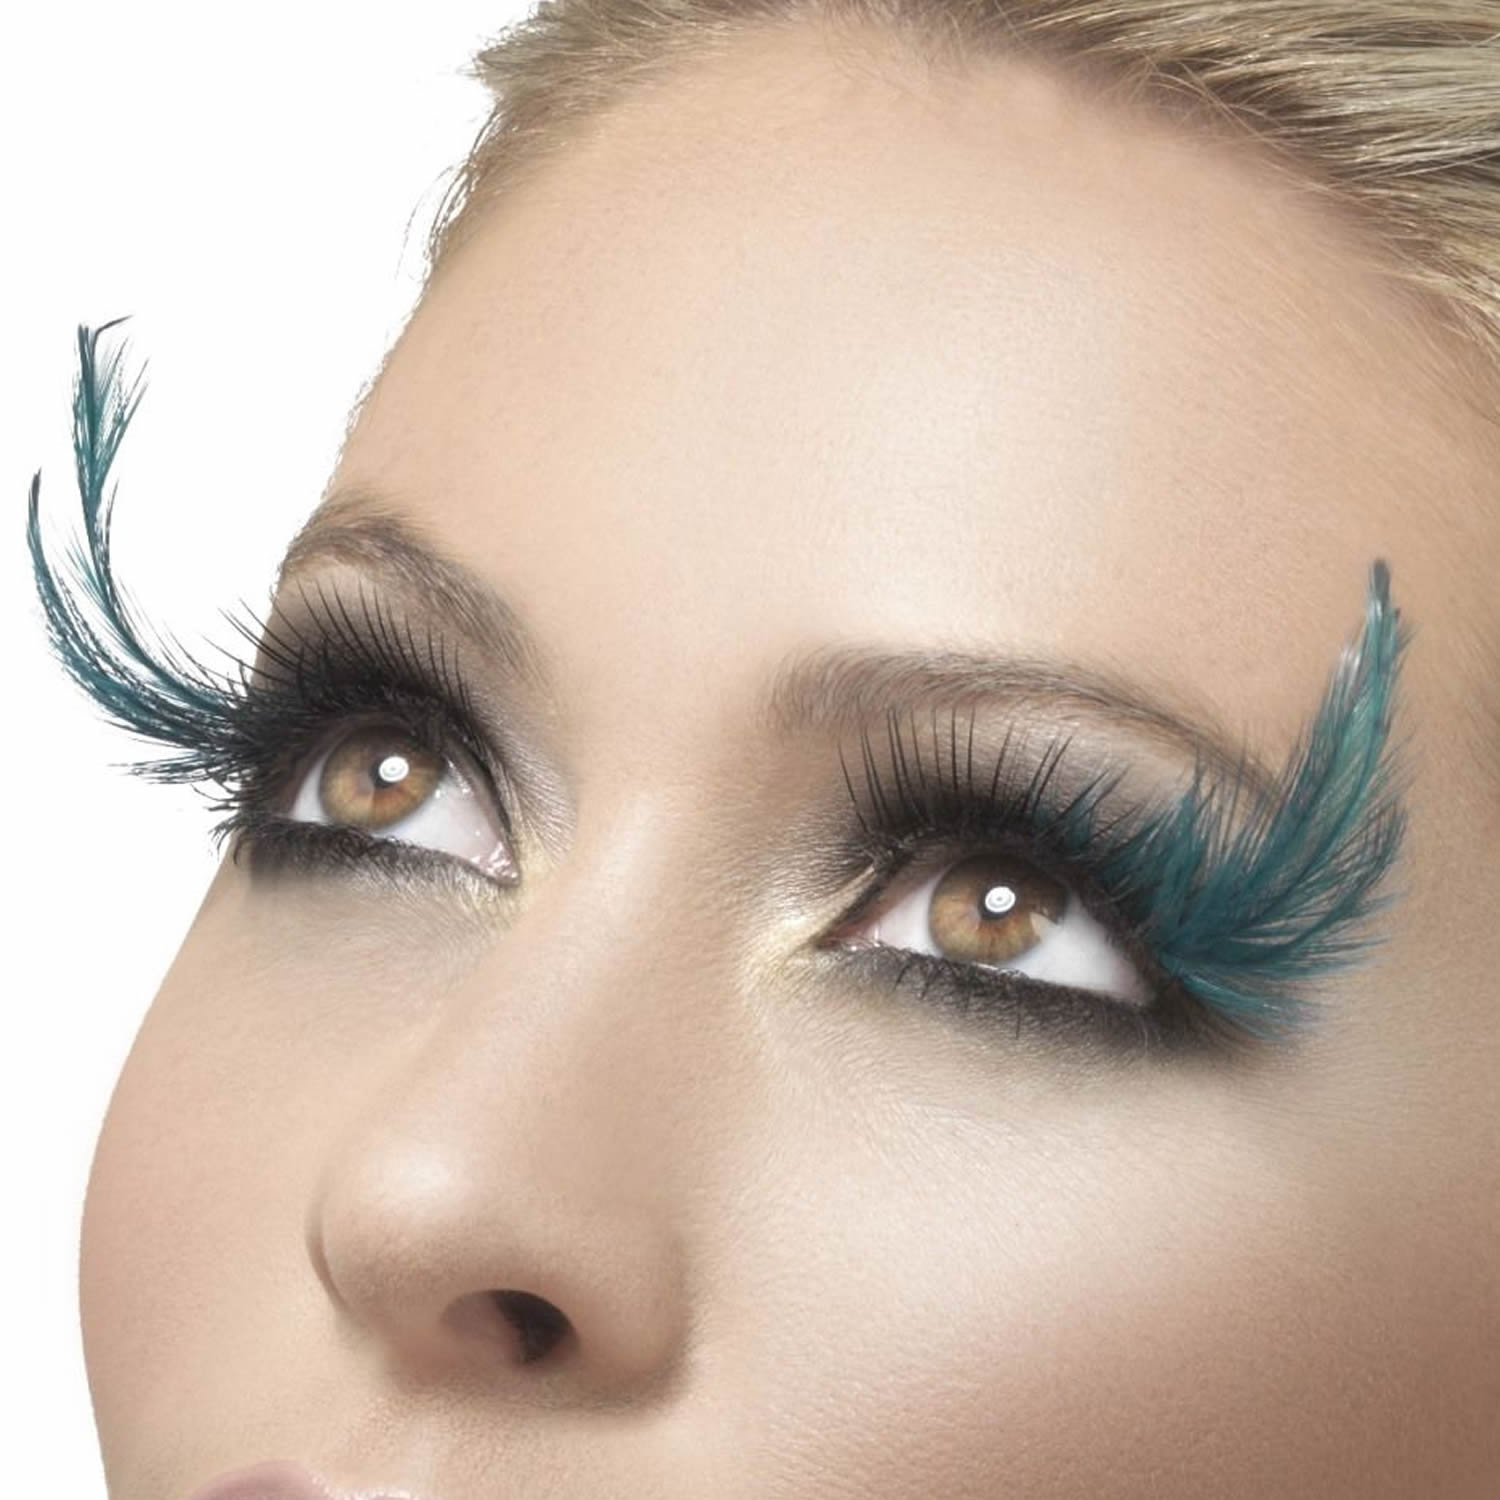 Fever False Eyelashes - Black & Green (w/ Feather Plume) - Red Carpet FX - Professional Makeup